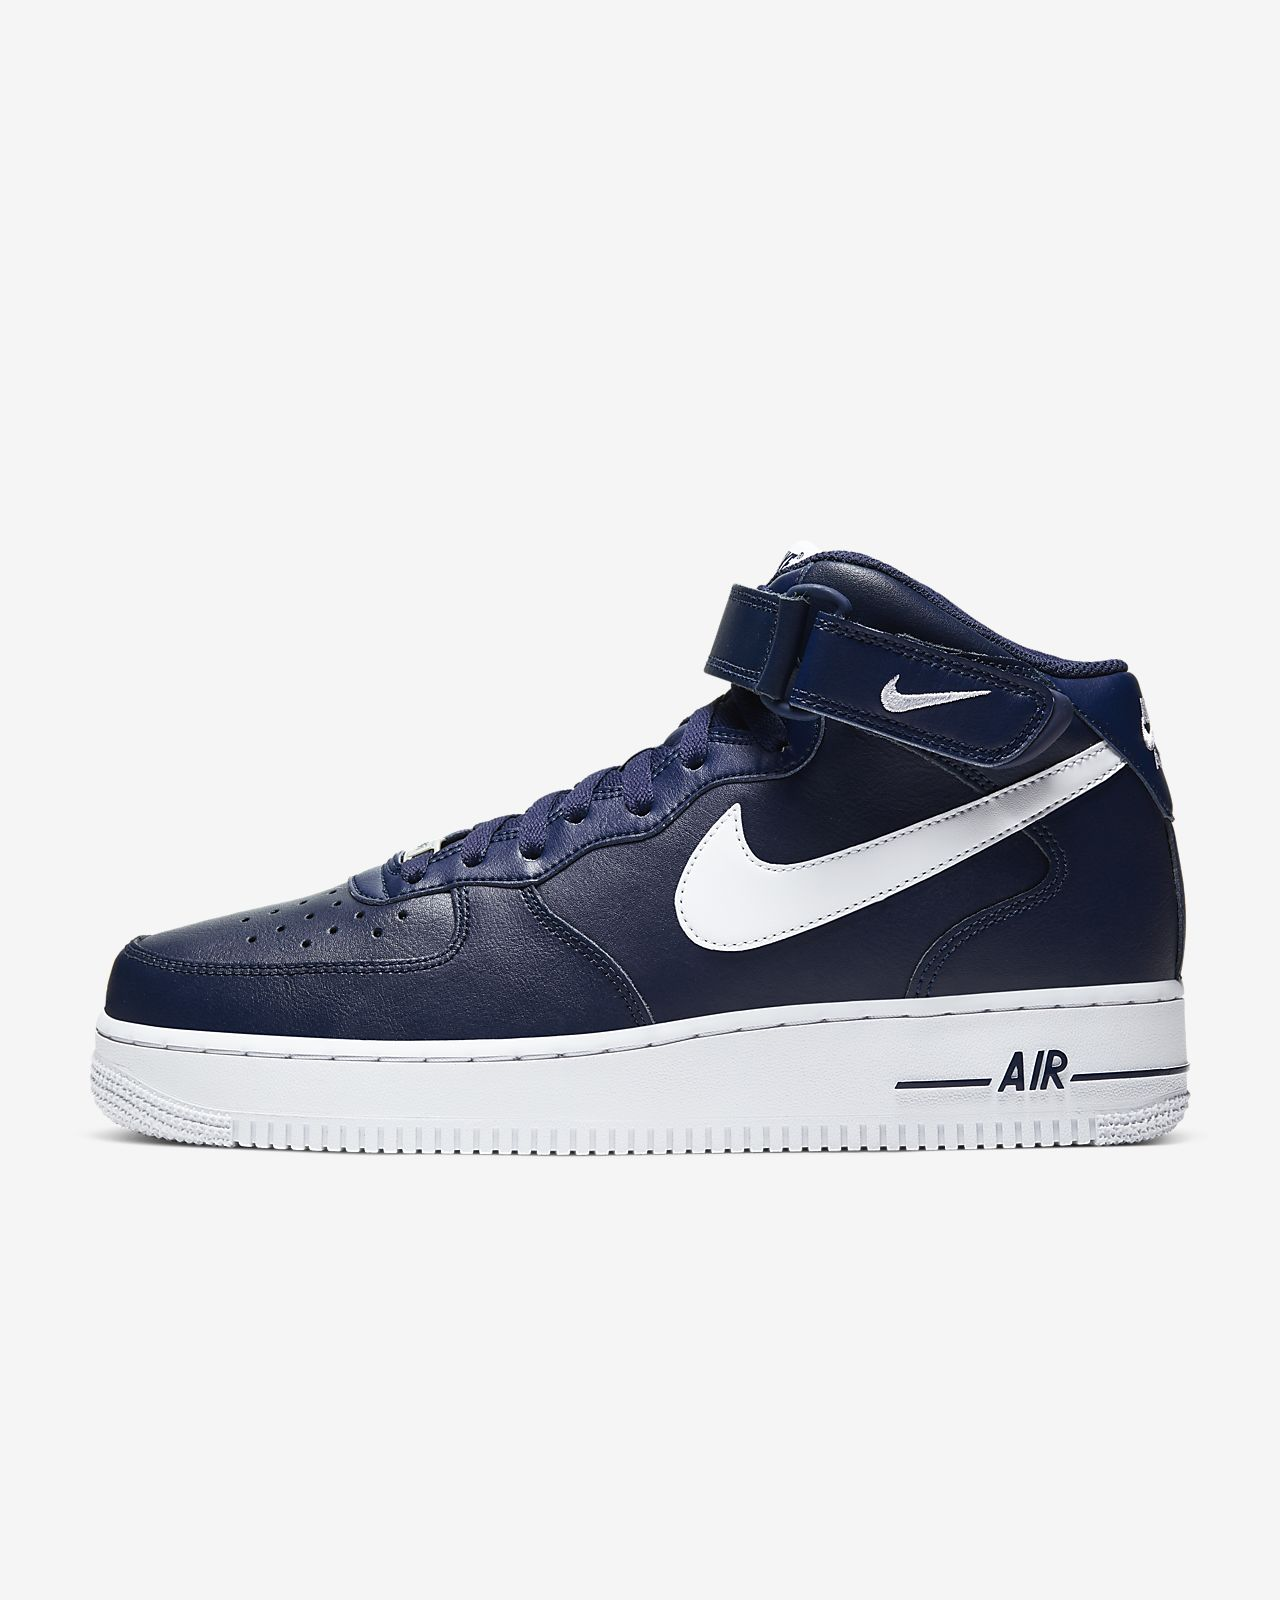 air force 1 suede bleu marine